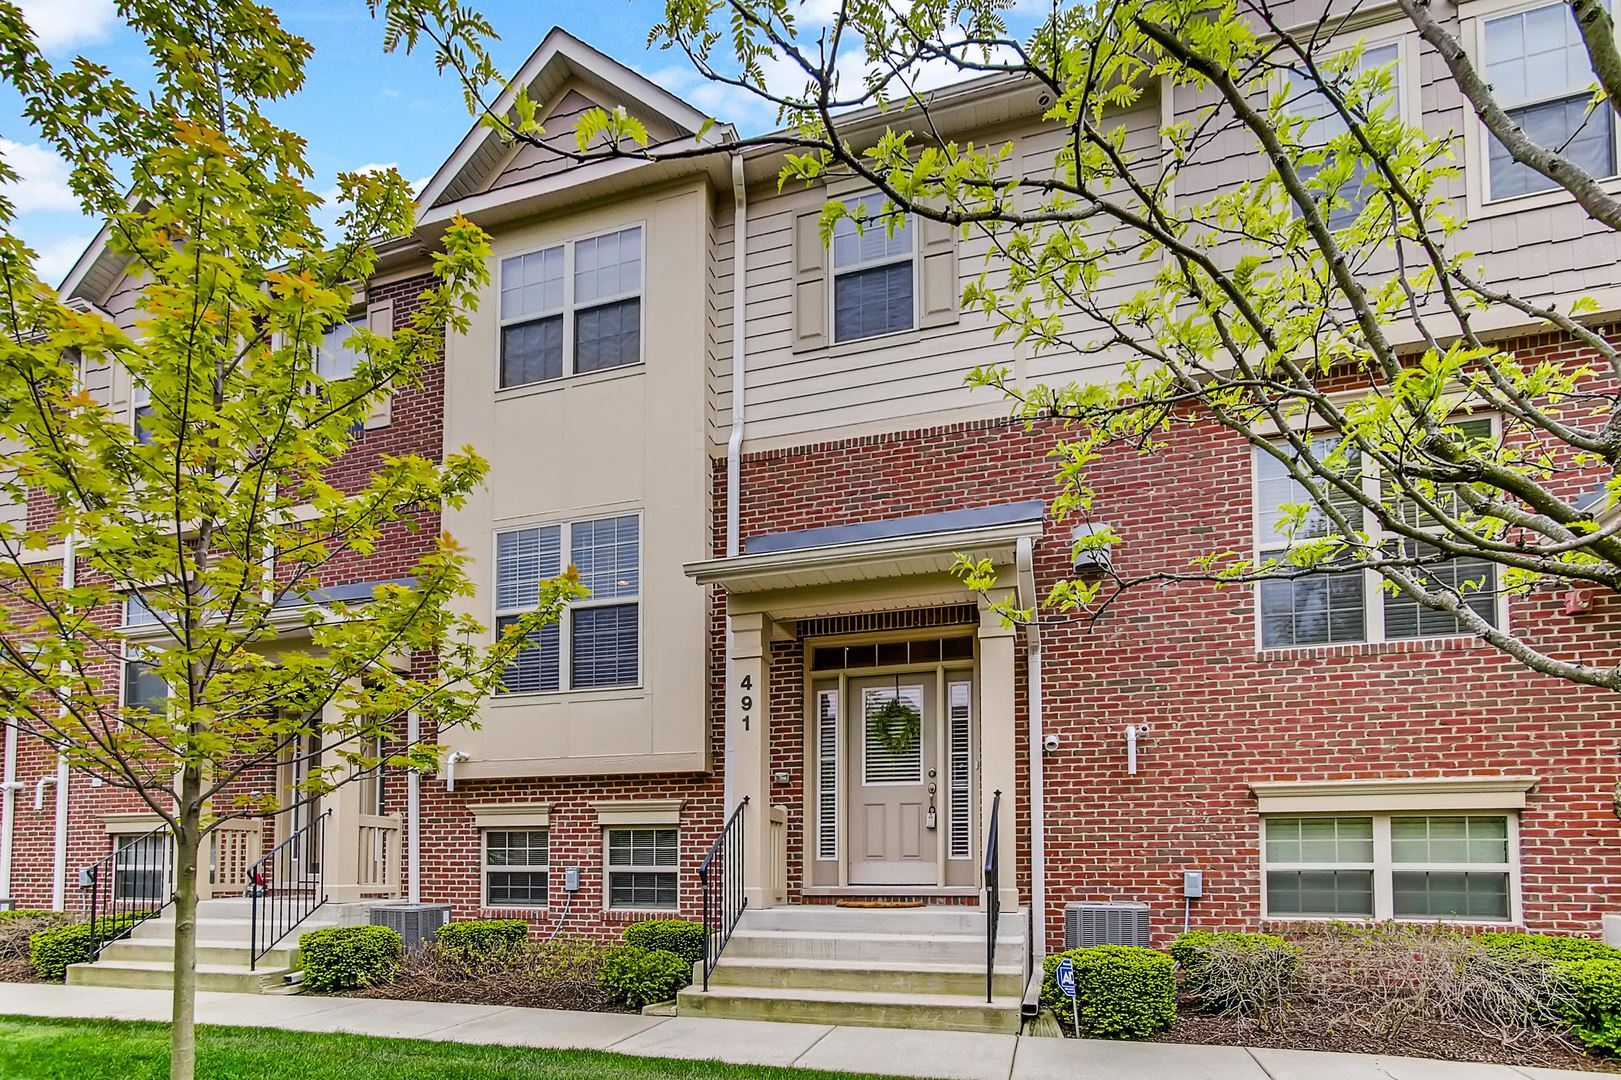 491 Kenilworth Avenue, Glen Ellyn, IL 60137 - #: 10723849